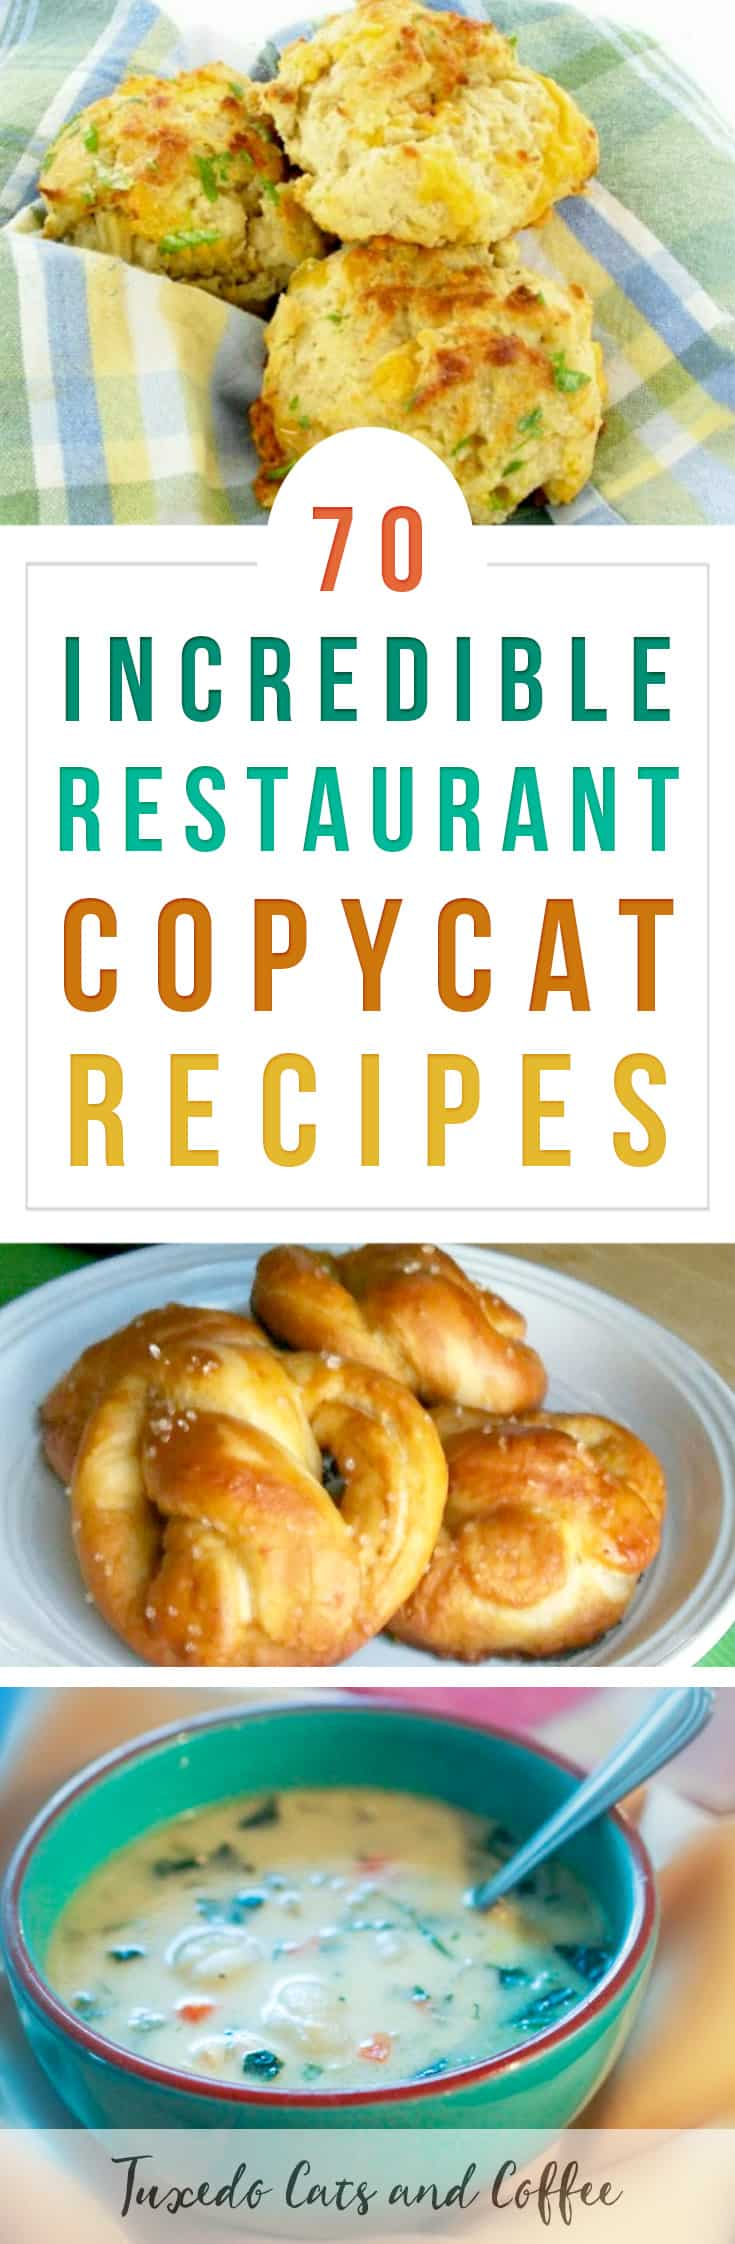 Wish you could eat at your favorite restaurants more often or make their dishes yourself? Here are more than 70 incredible restaurant copycat recipes to get the flavors of your favorite restaurants at home. #restaurantcopycat #copycatrecipe